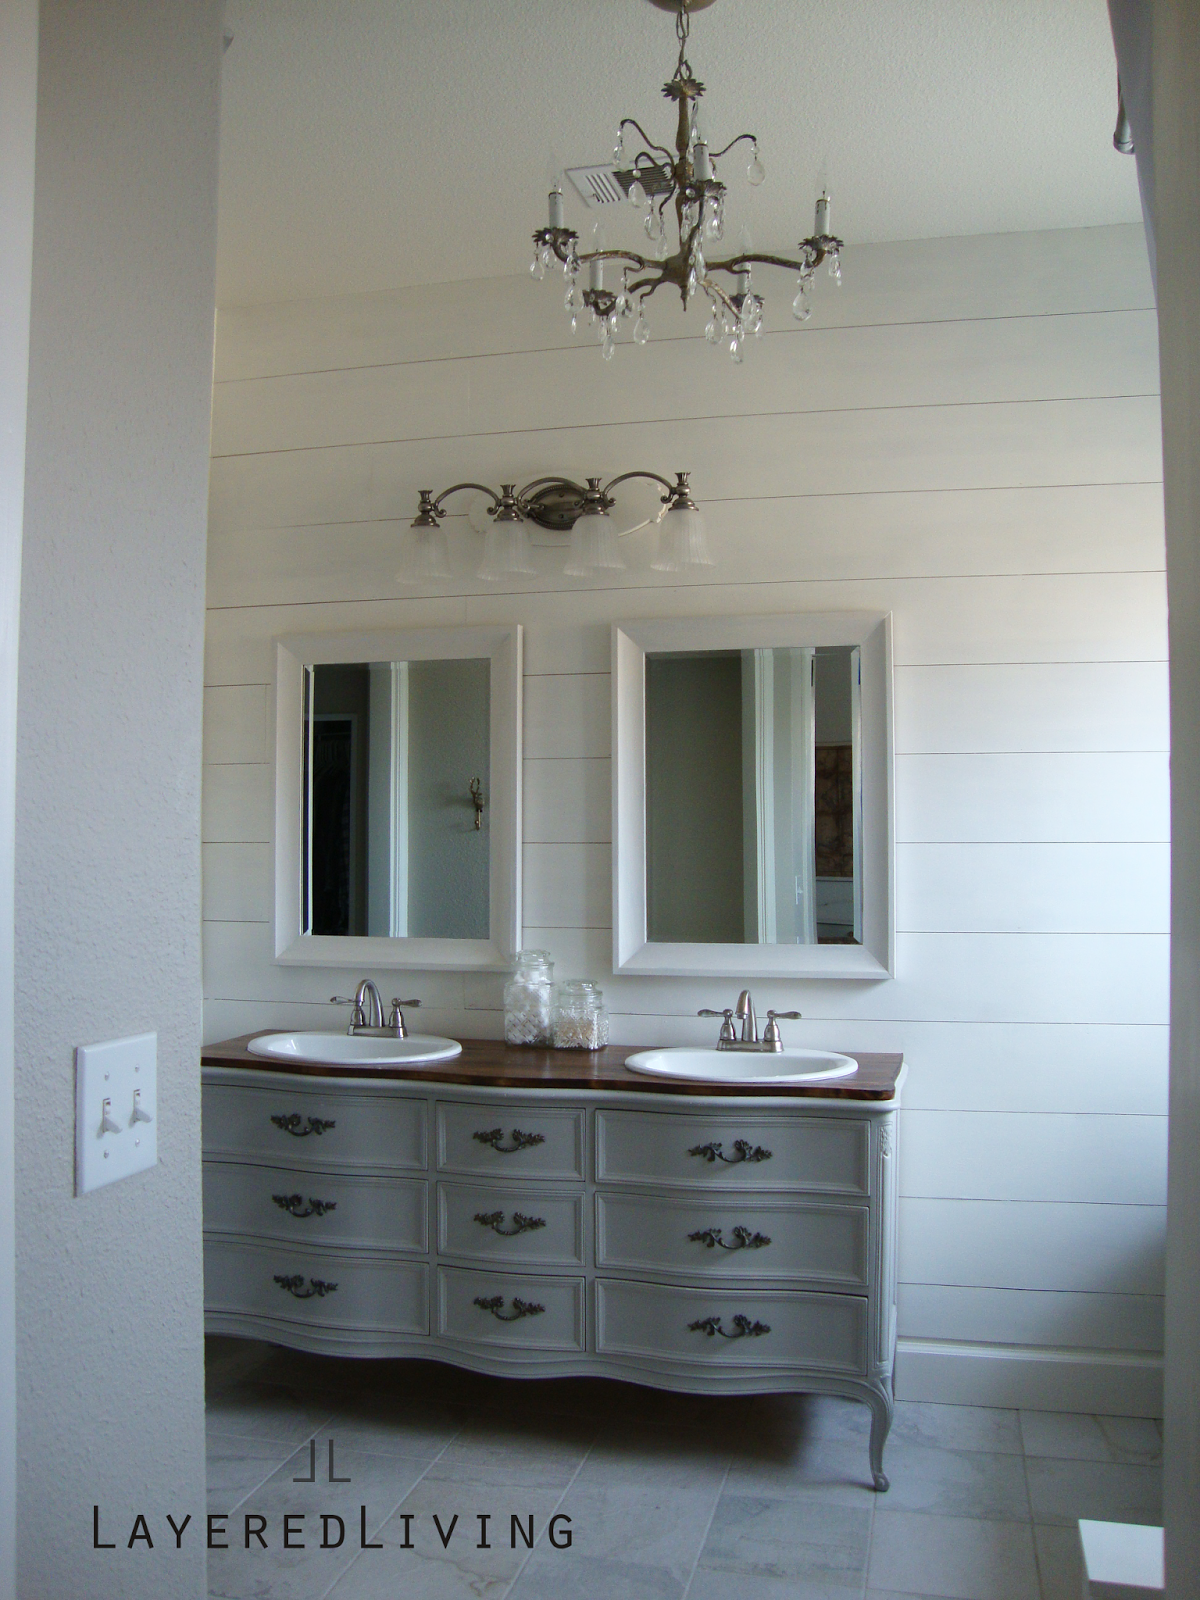 onsingularity take new bathroom dual gallery the dakota falls a sioux vanity kitchen com bath double vanities sd on photo